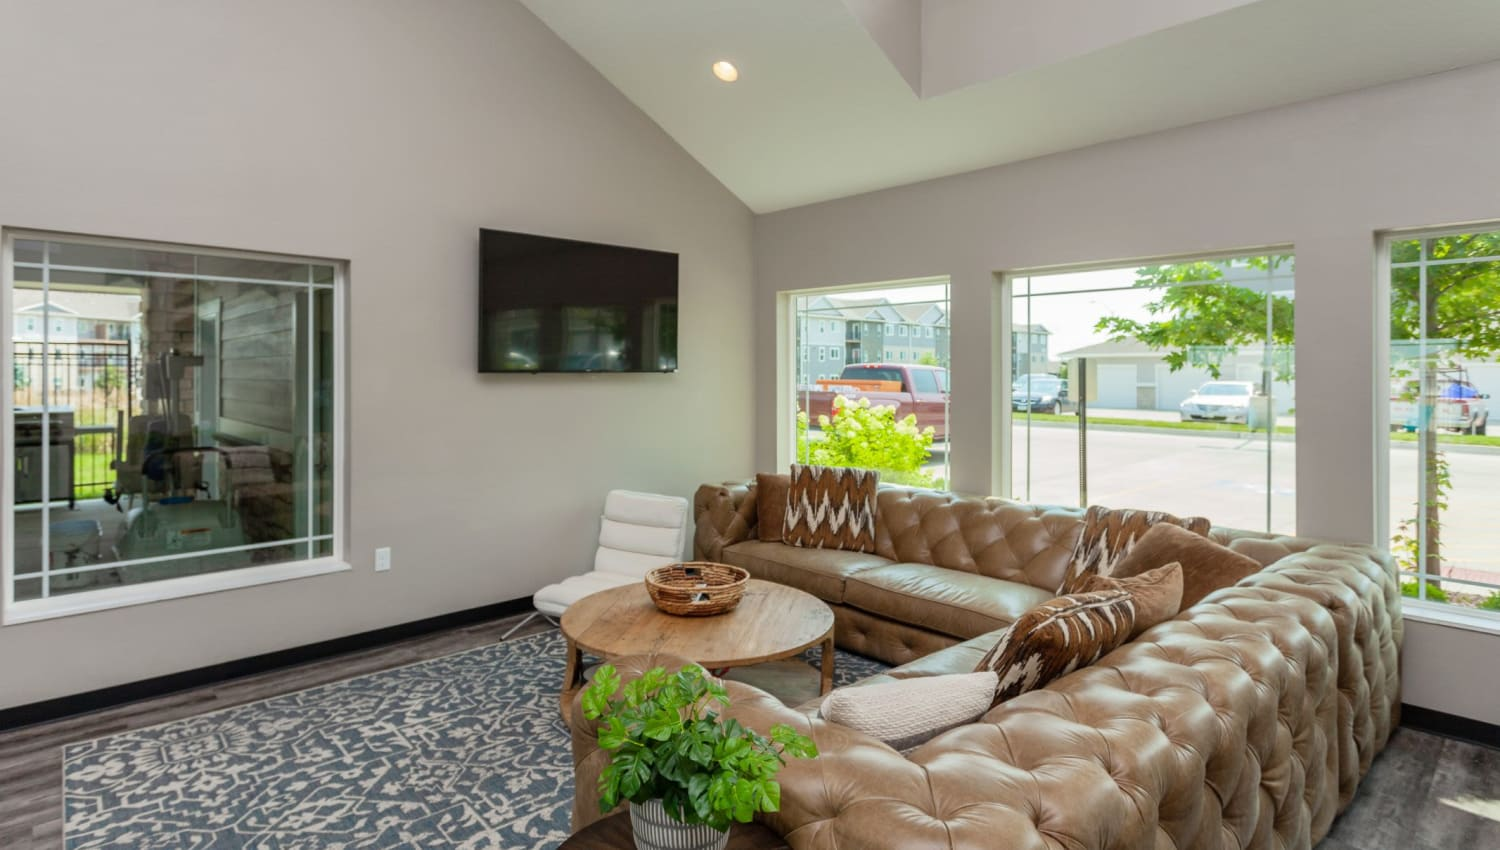 Residents hanging out in their living room at Autumn Ridge in Waukee, Iowa